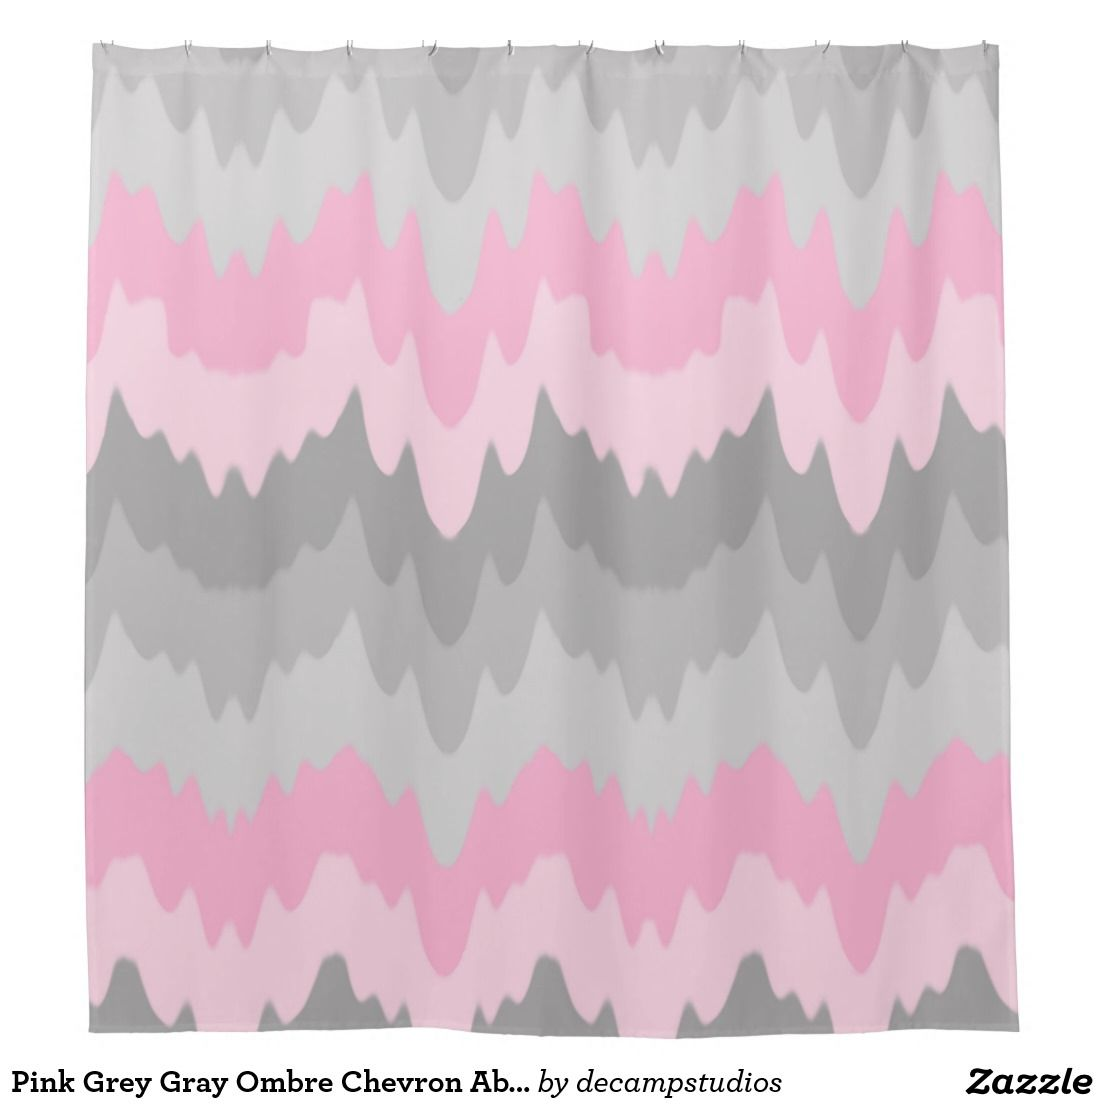 Shower curtains for girls - Pink Grey Gray Ombre Chevron Abstract Zigzag Girl Shower Curtain